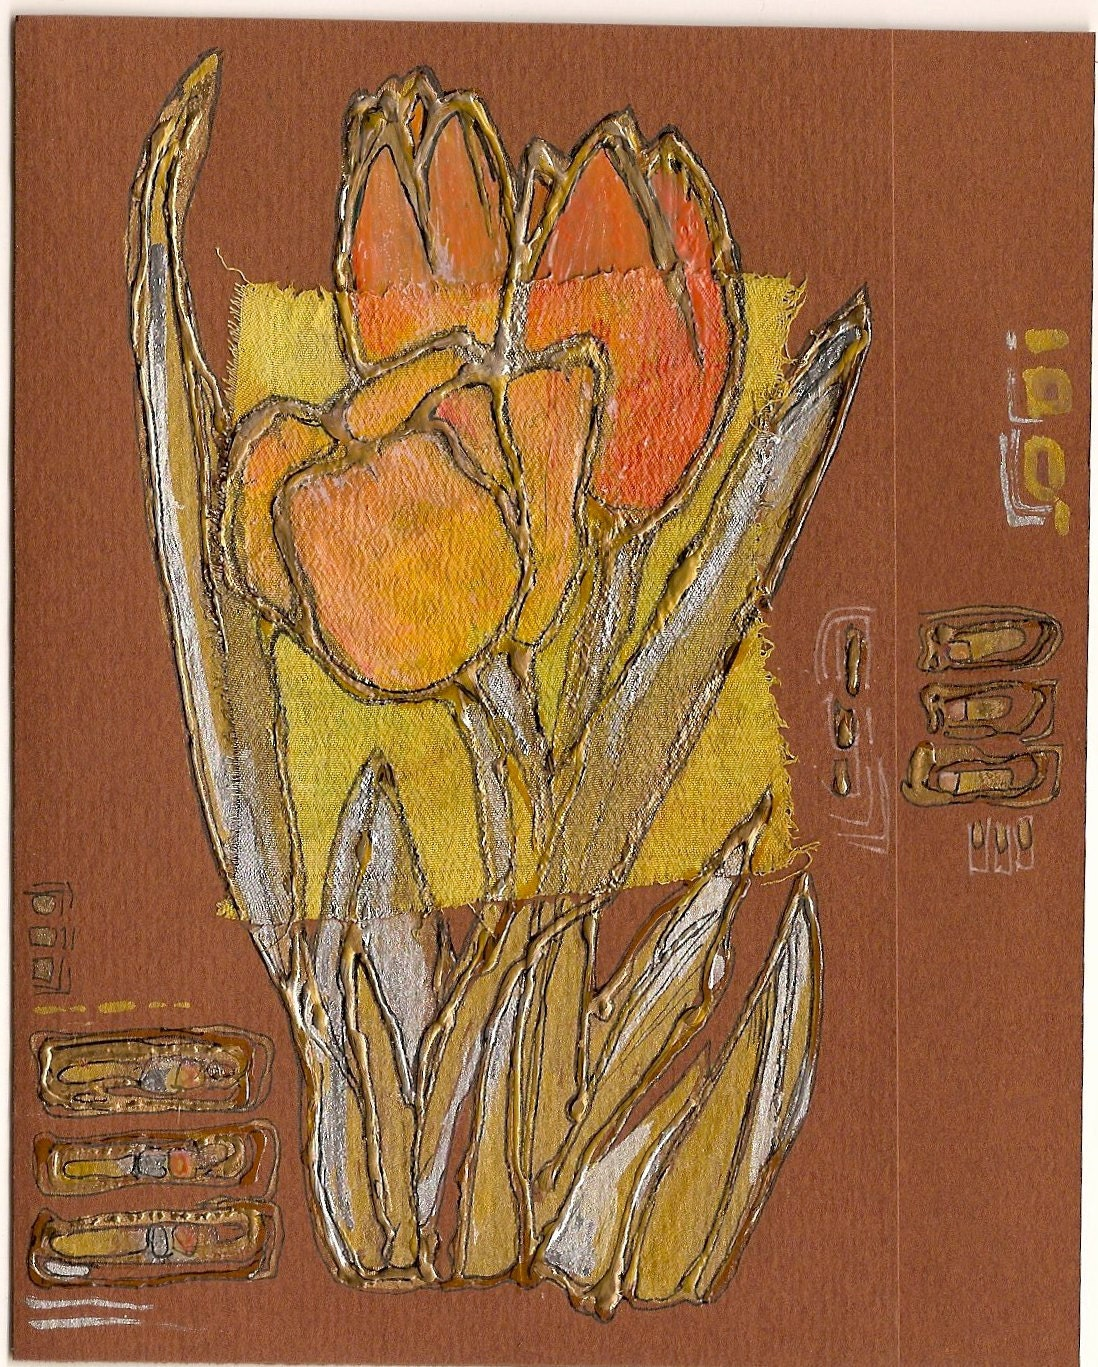 Orange tulips - blank greeting card for any occasion